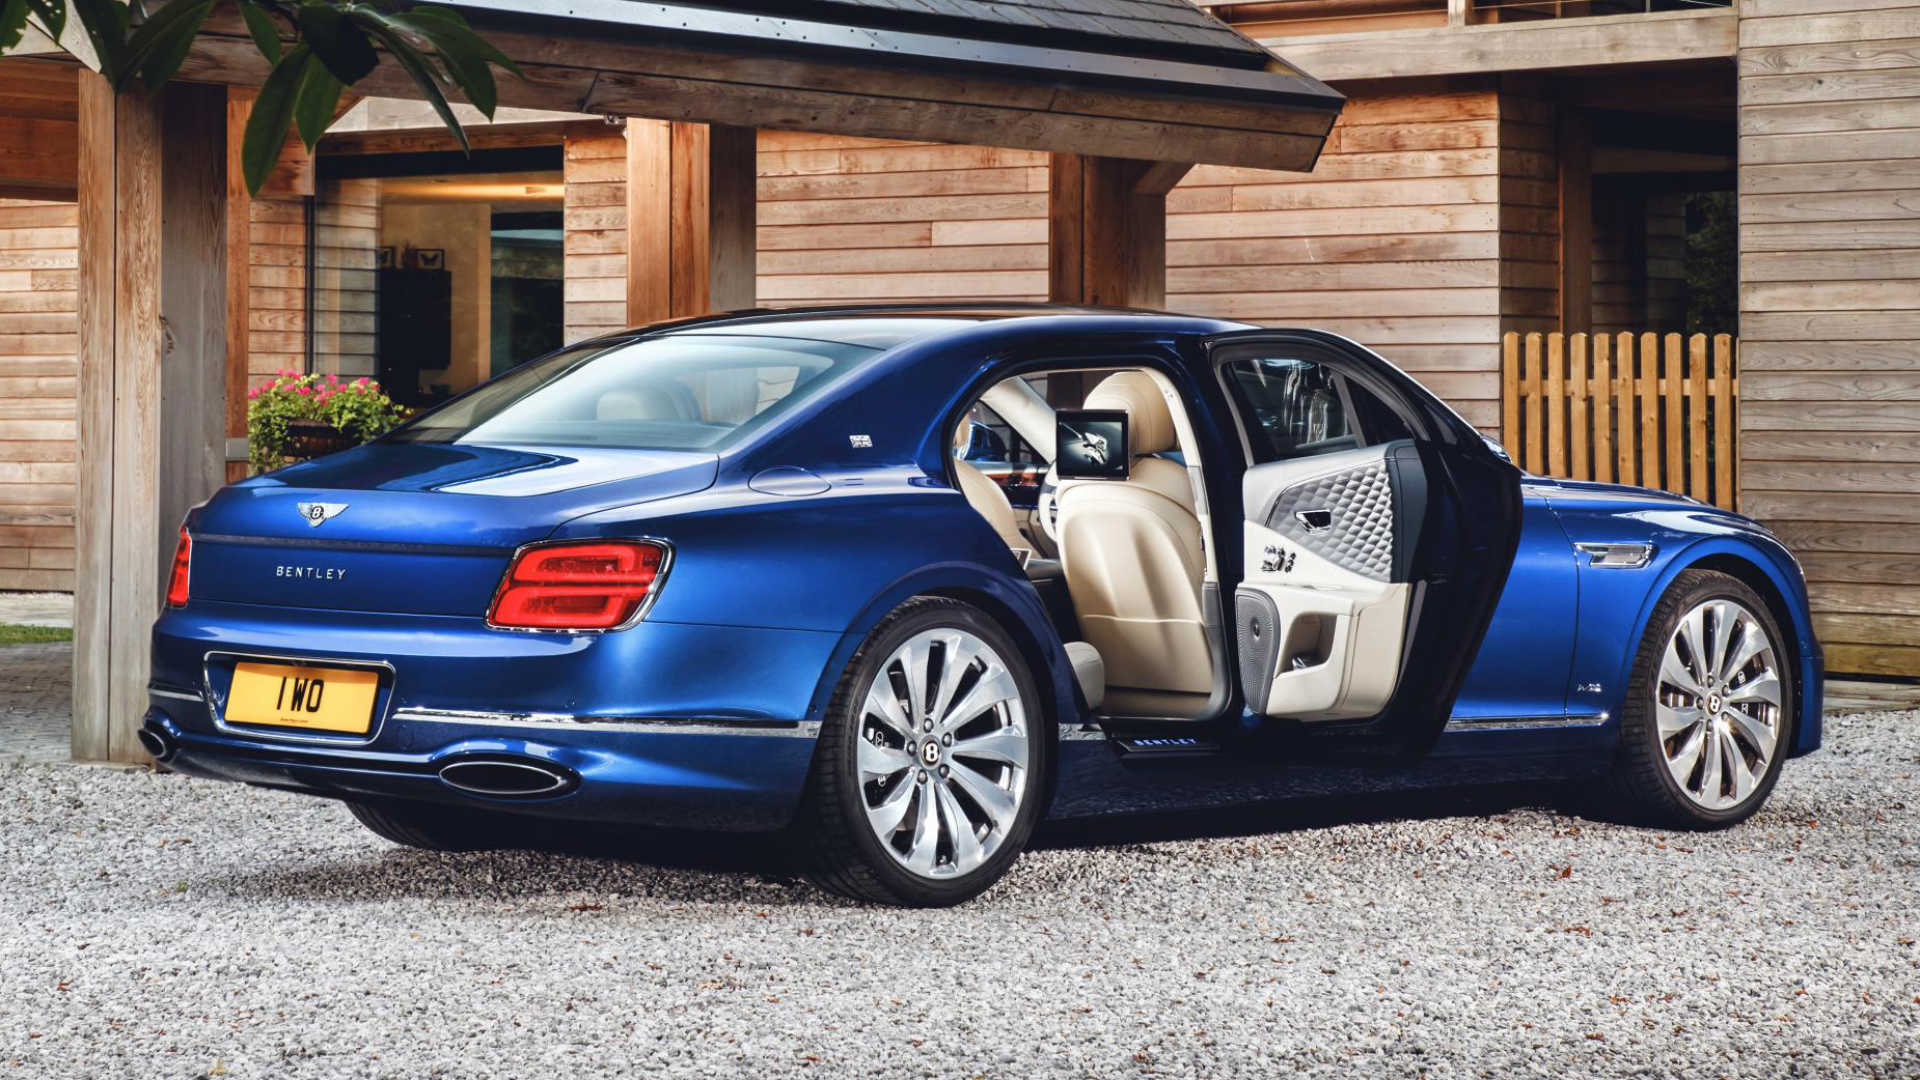 Bentley Flying Spur First Edition rear